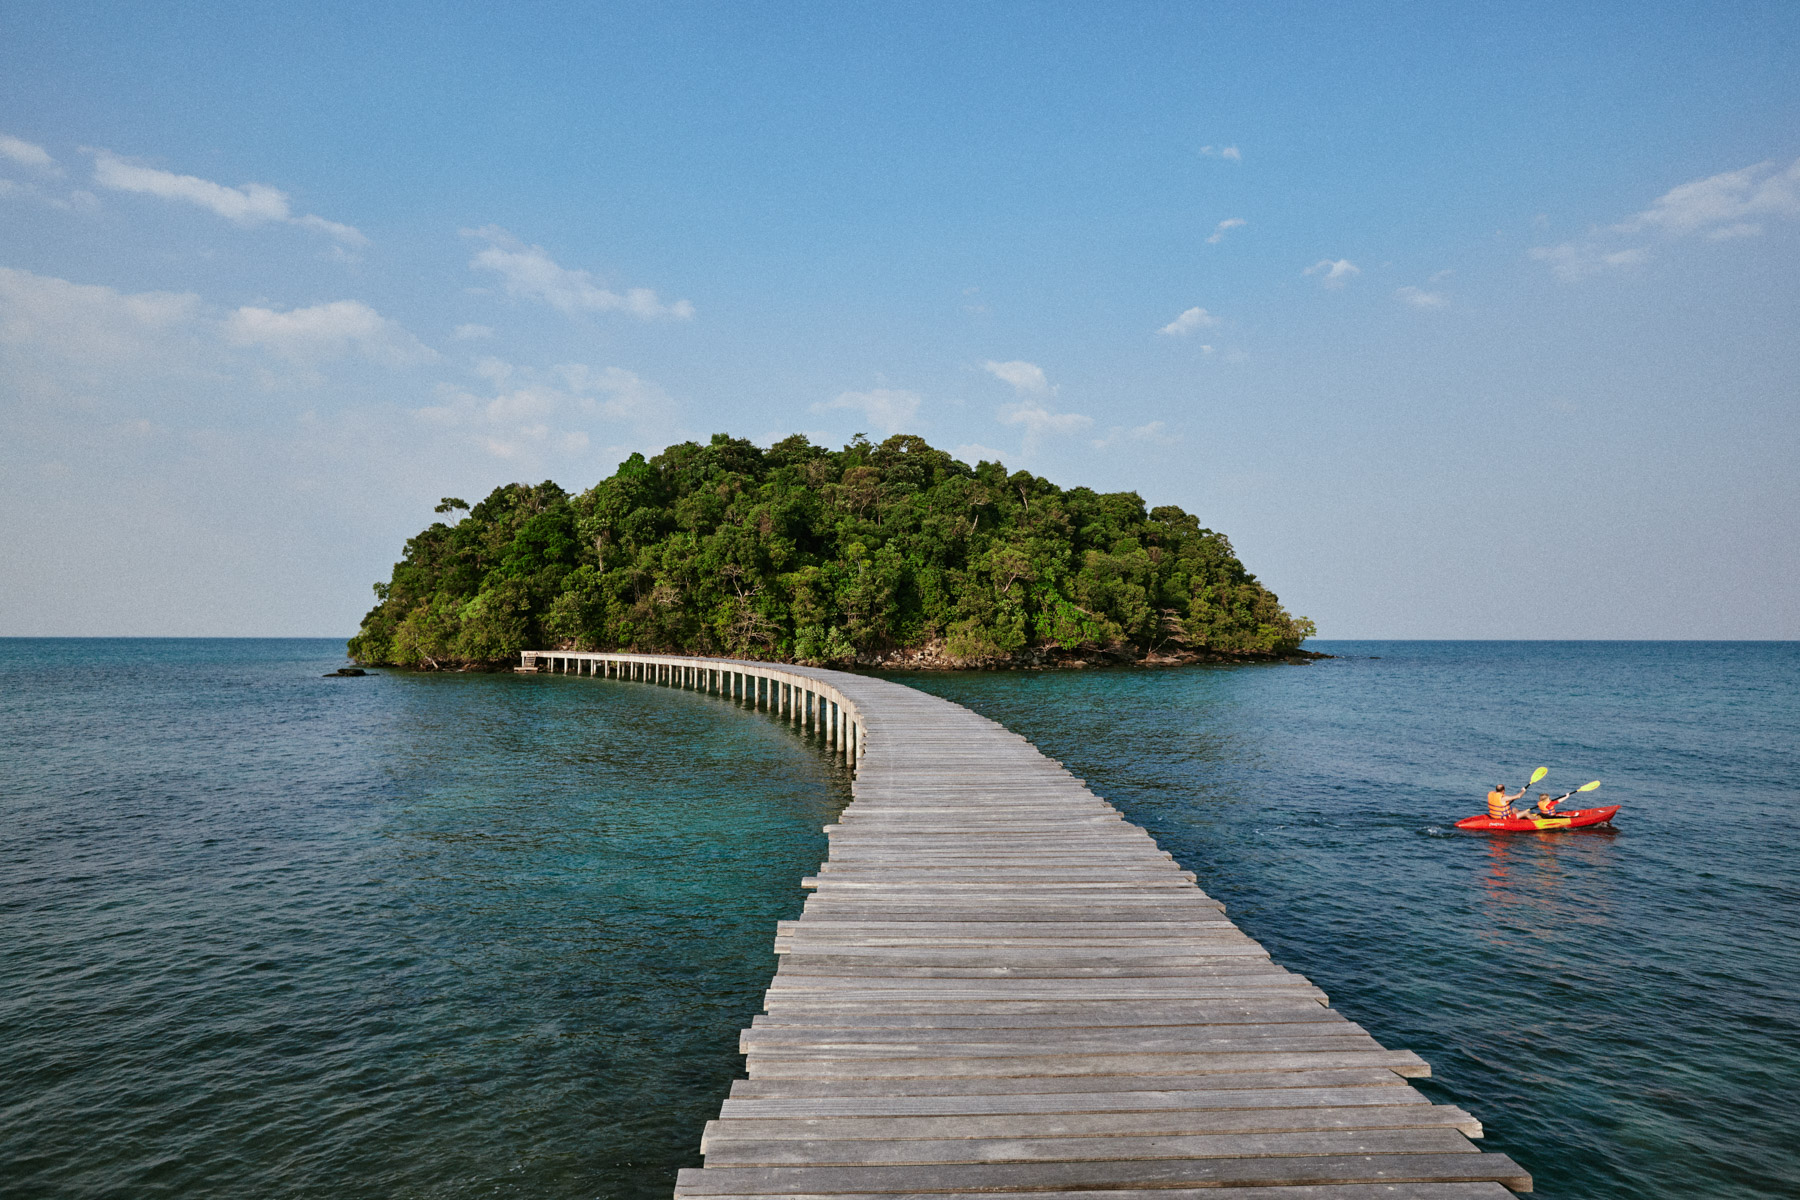 Kayaking at Song Saa's private island resort off the coast of southern Cambodia.